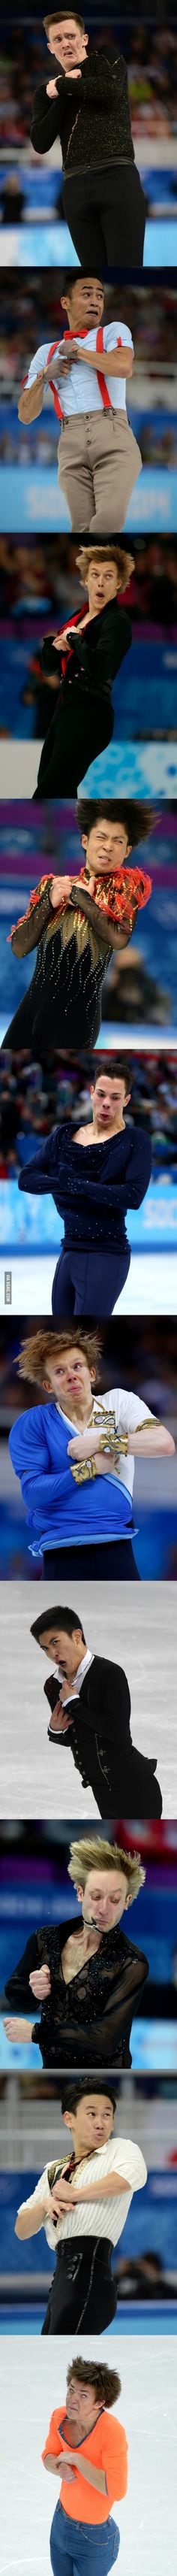 Become a figure skater they said. it will be fun they said hahaha omg the last one